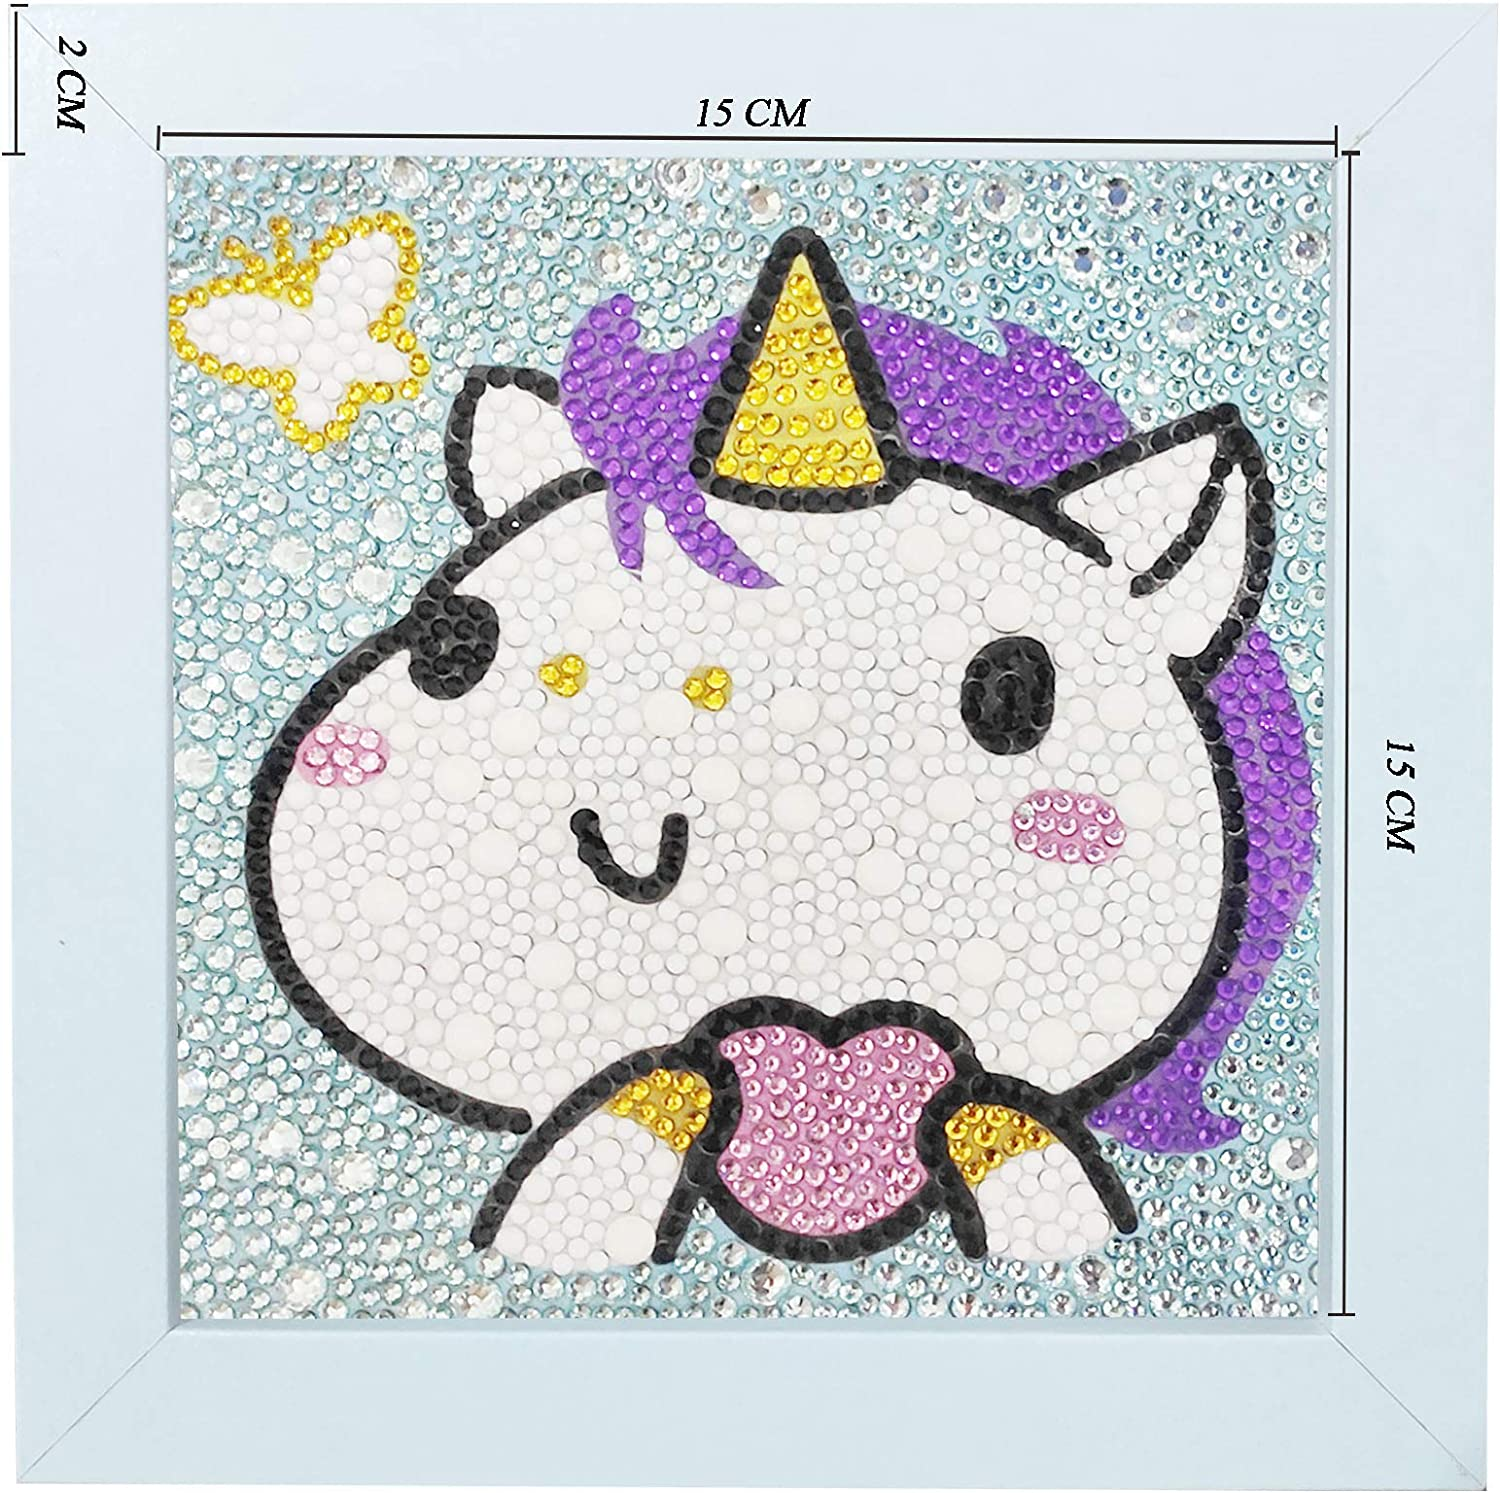 Uniic Diamond Painting by Number Kits for Kids with Wooden Frame Unicorn, 15x20cm